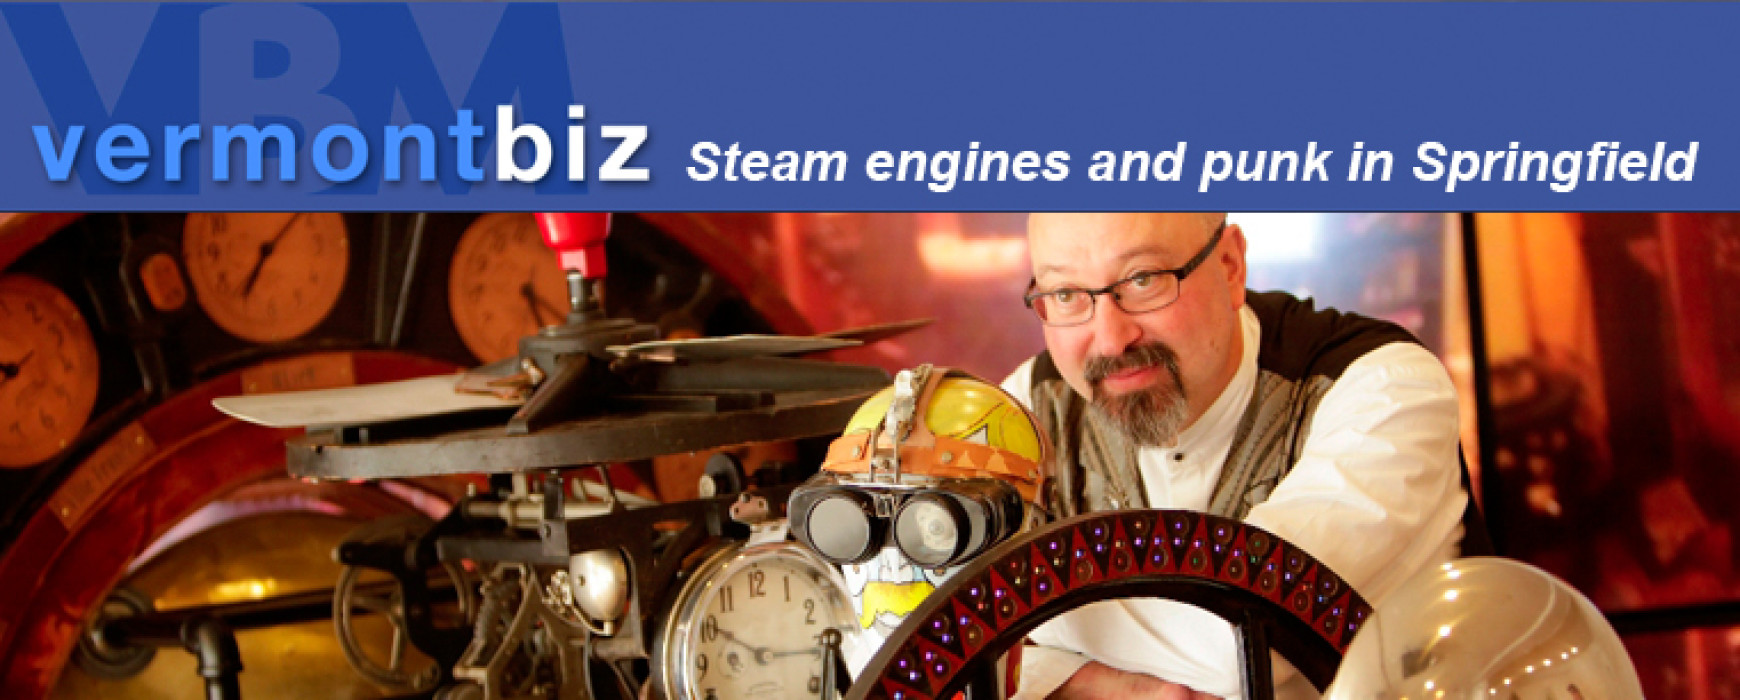 vermontbiz: Steam engines and punk in Springfield